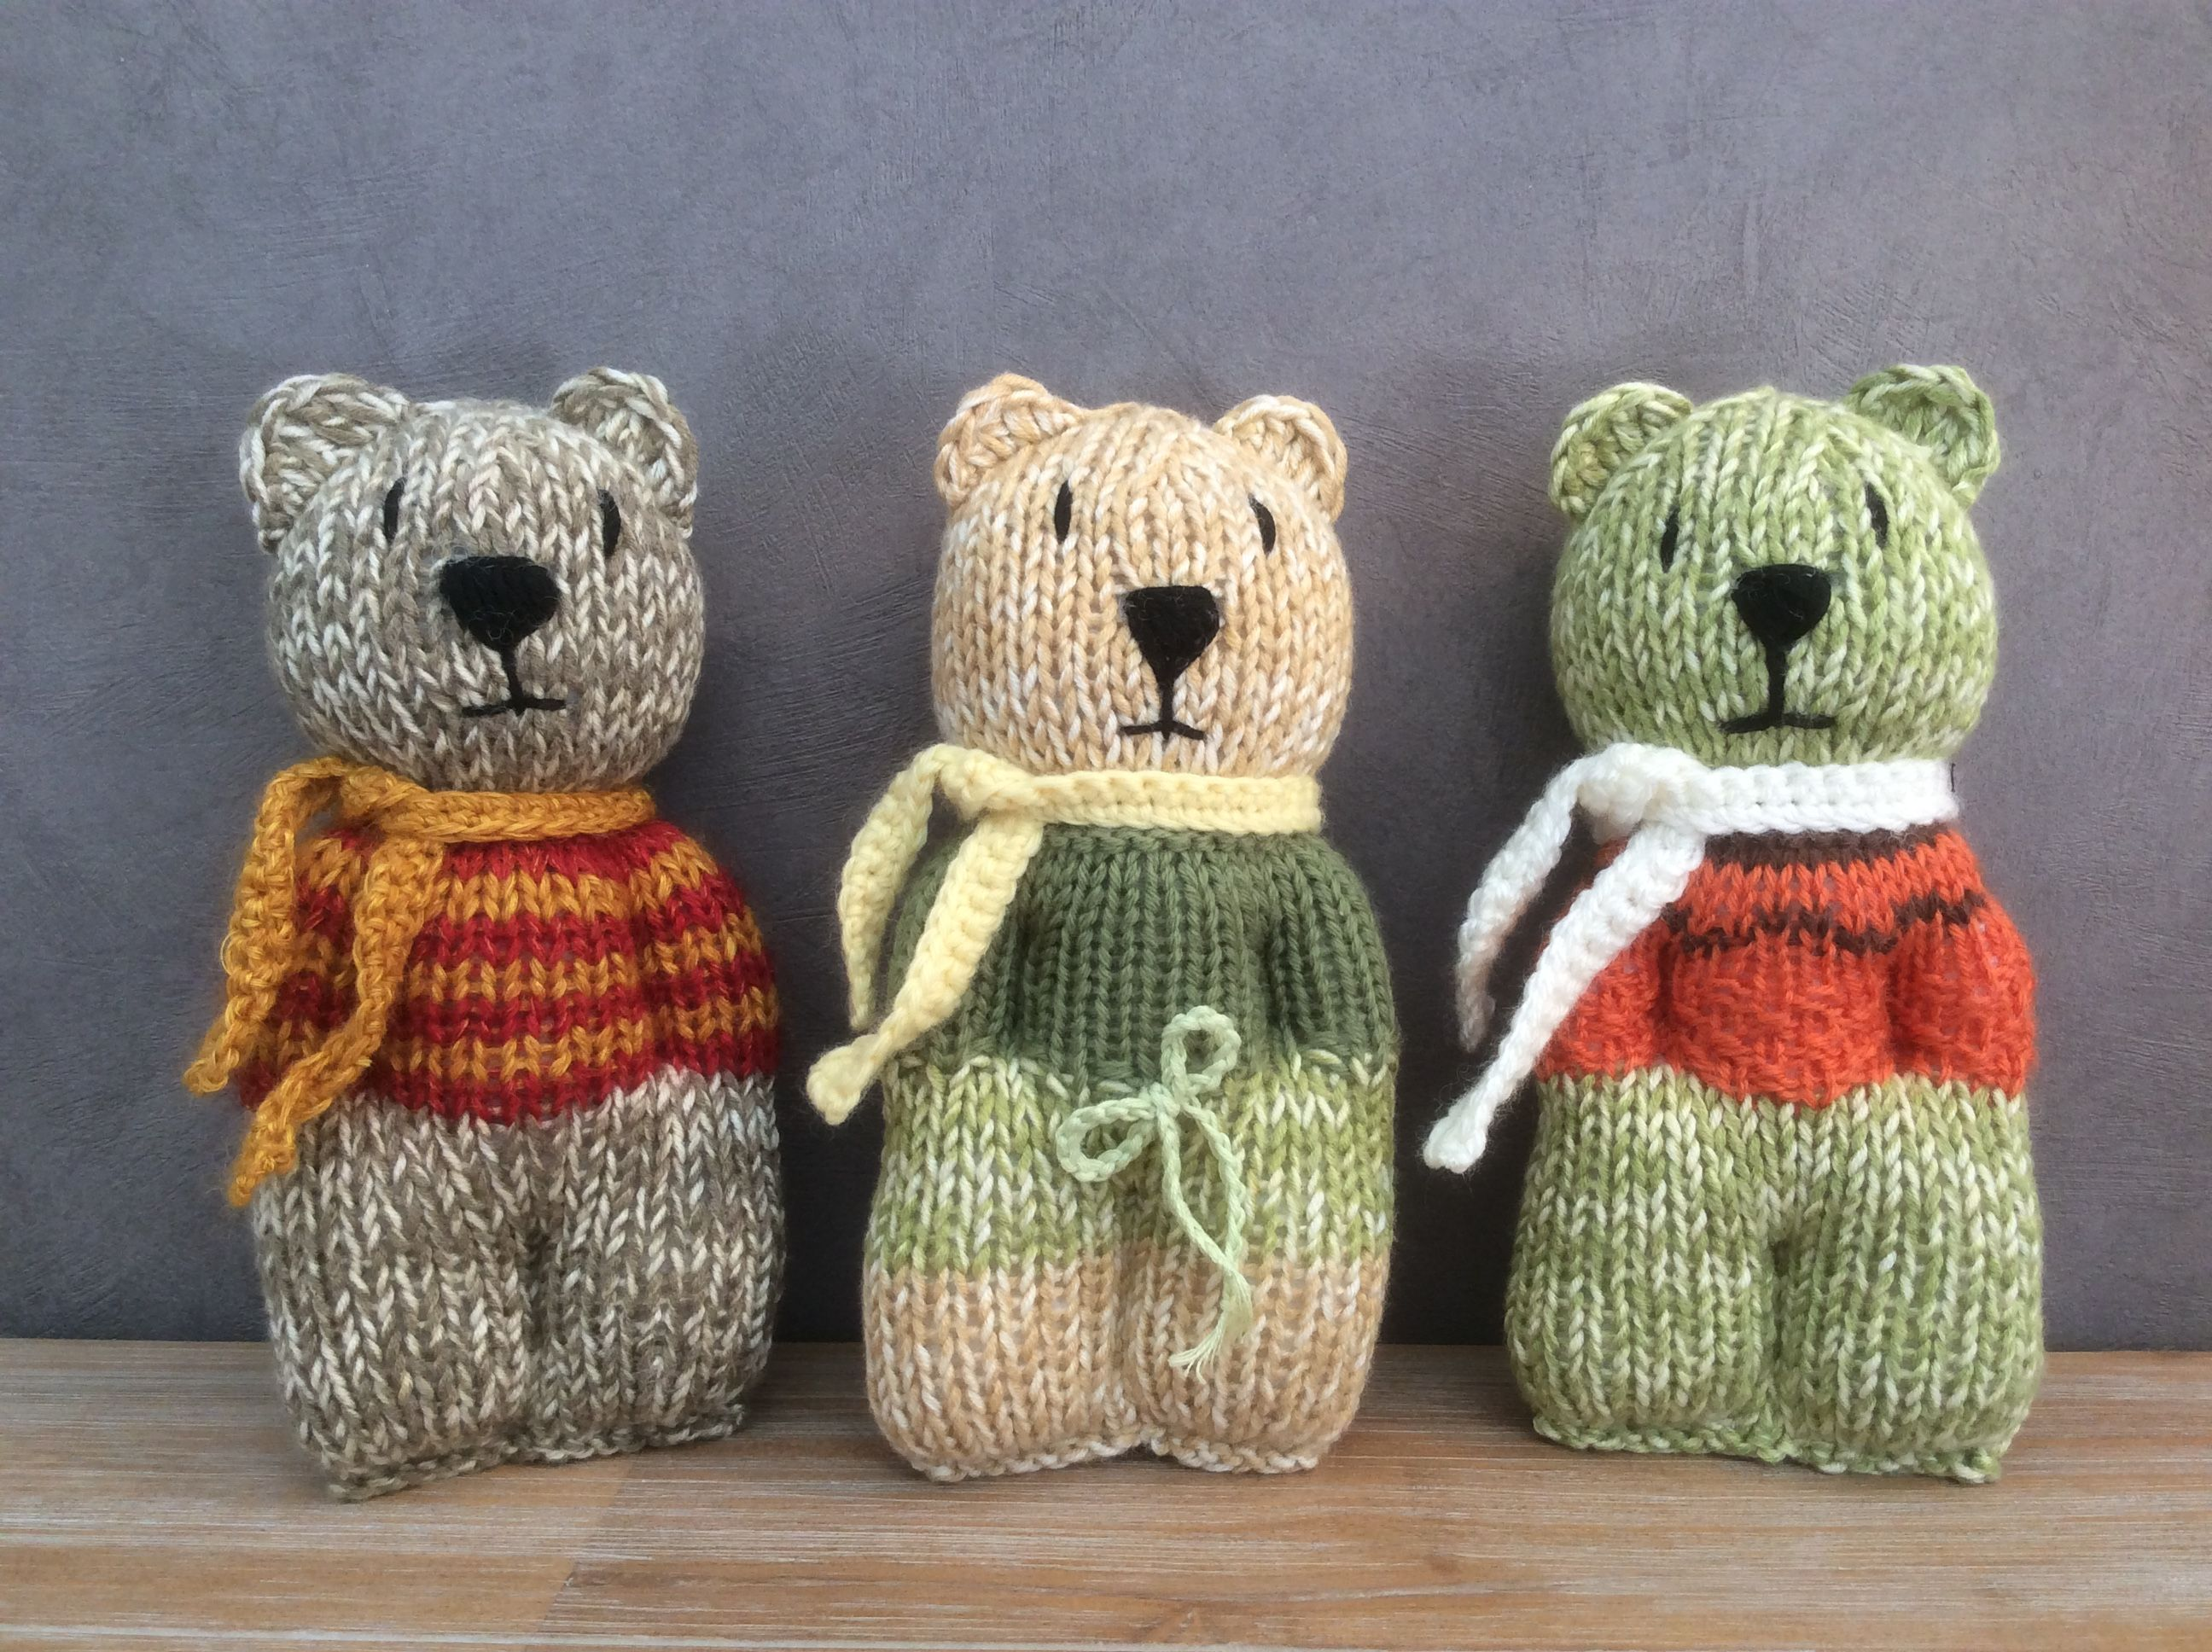 knitting comfort doll | Knitted doll patterns, Knitted ...